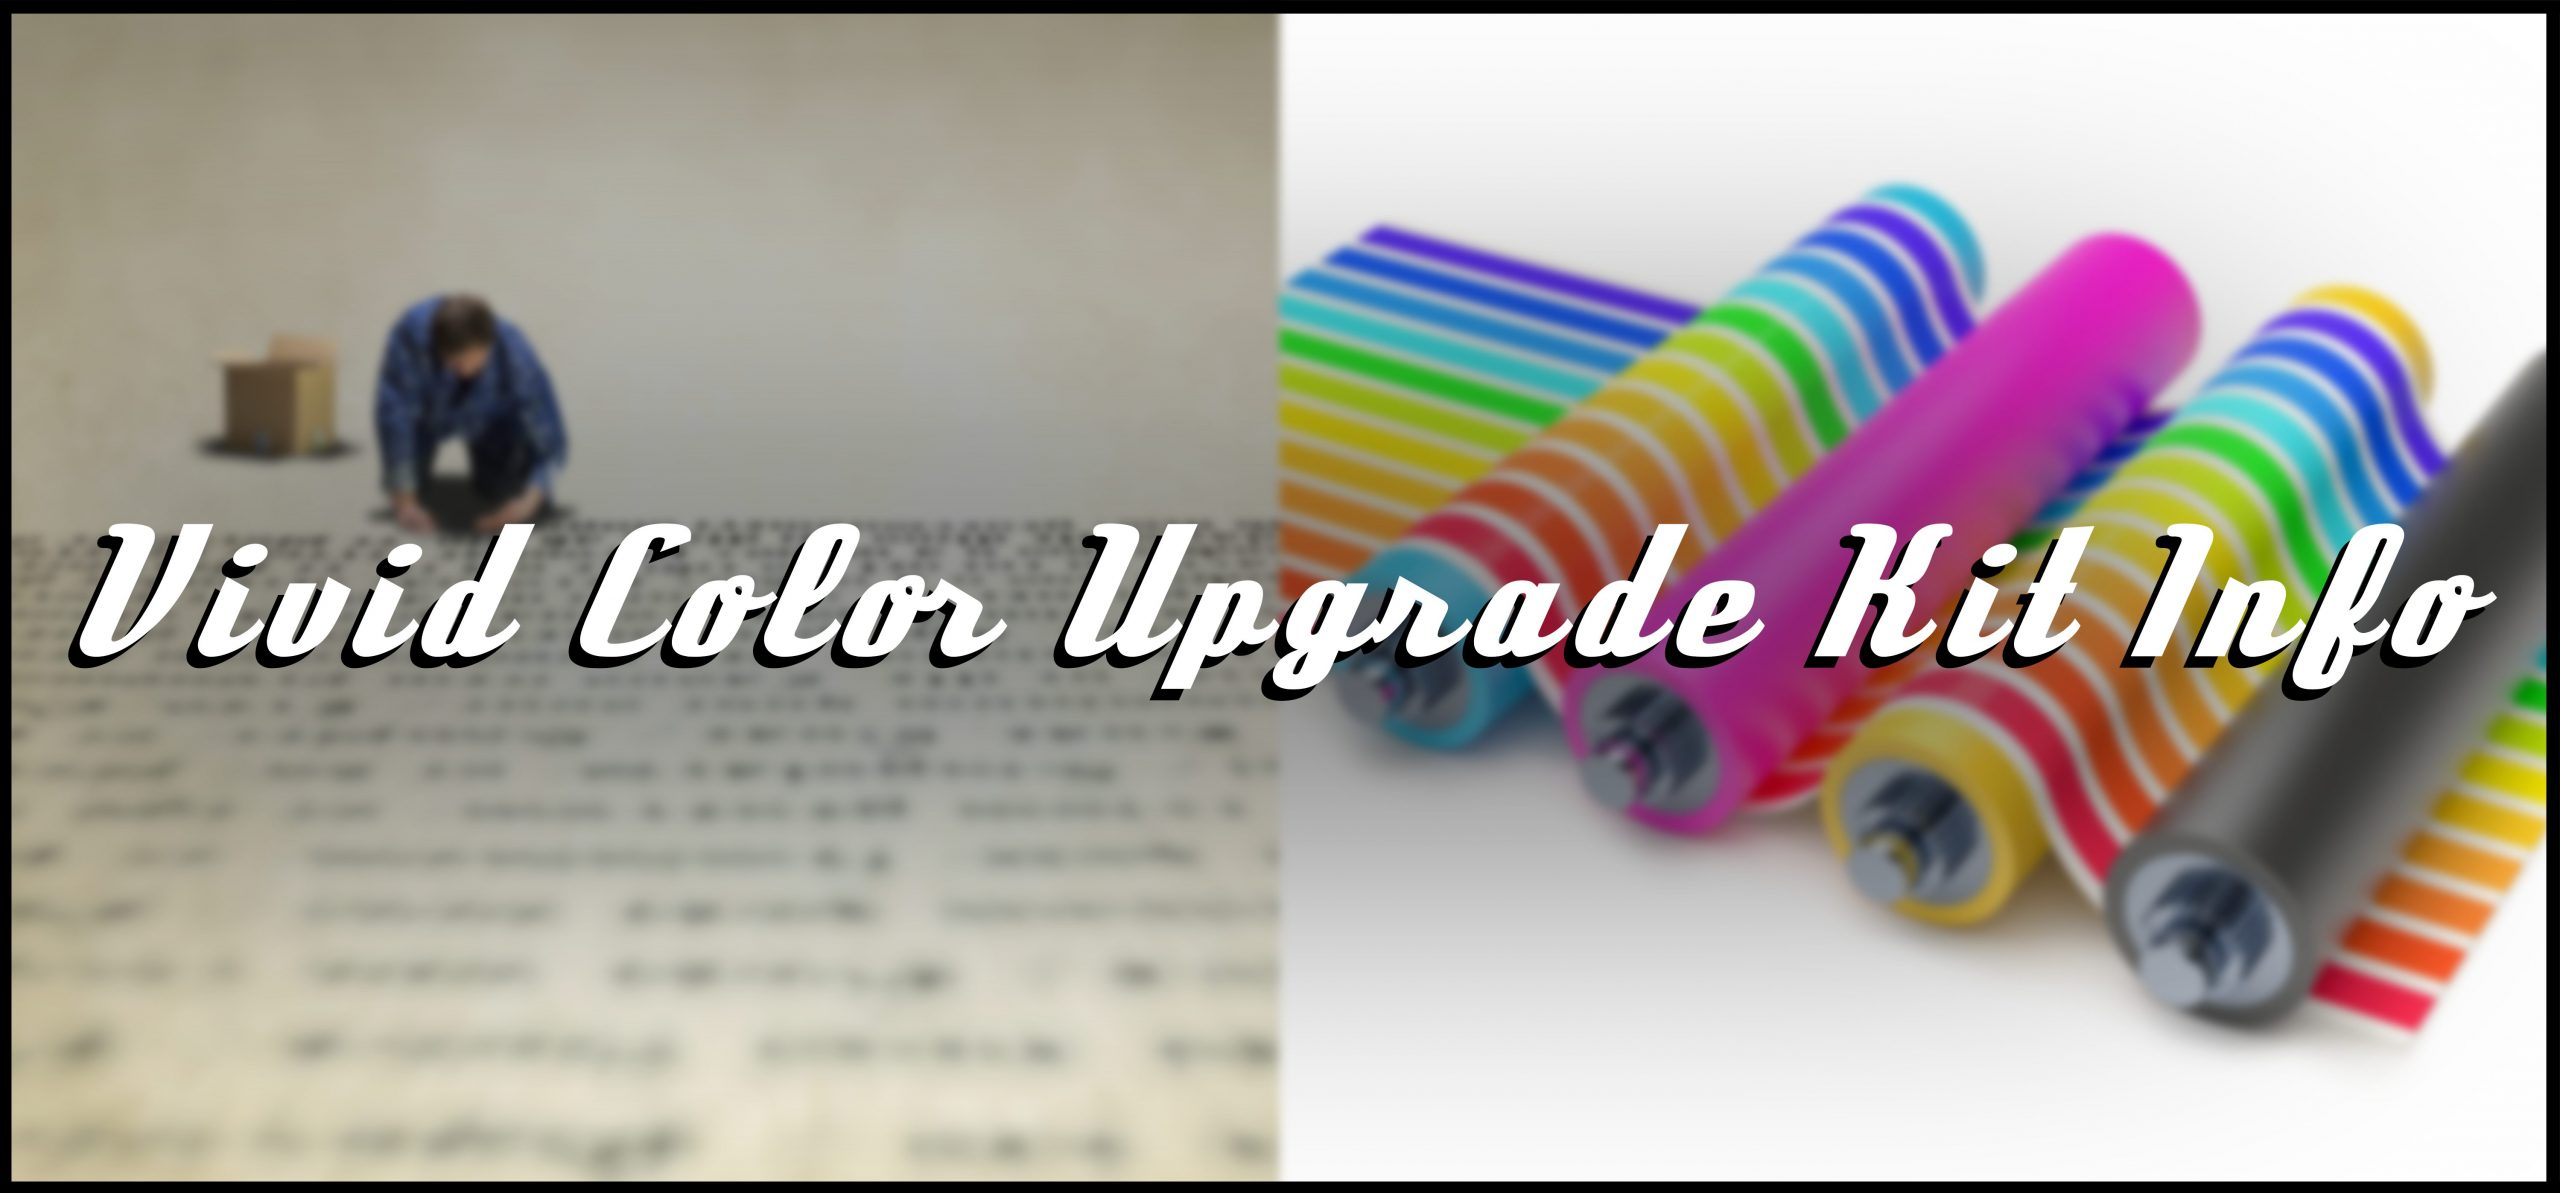 Xerox Color C60/C70 Vivid Color Upgrade Kit: All you need to know